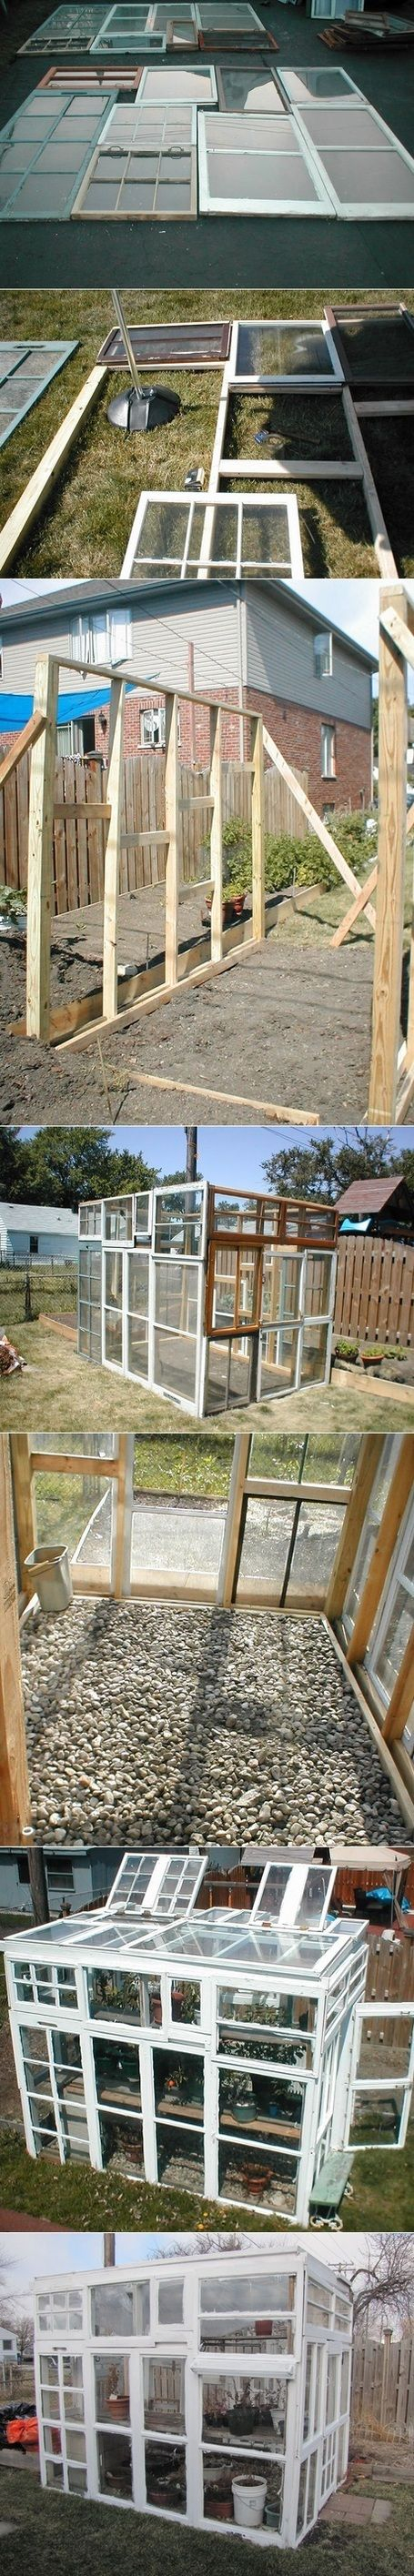 Build a Greenhouse With Old Windows... Next project :)